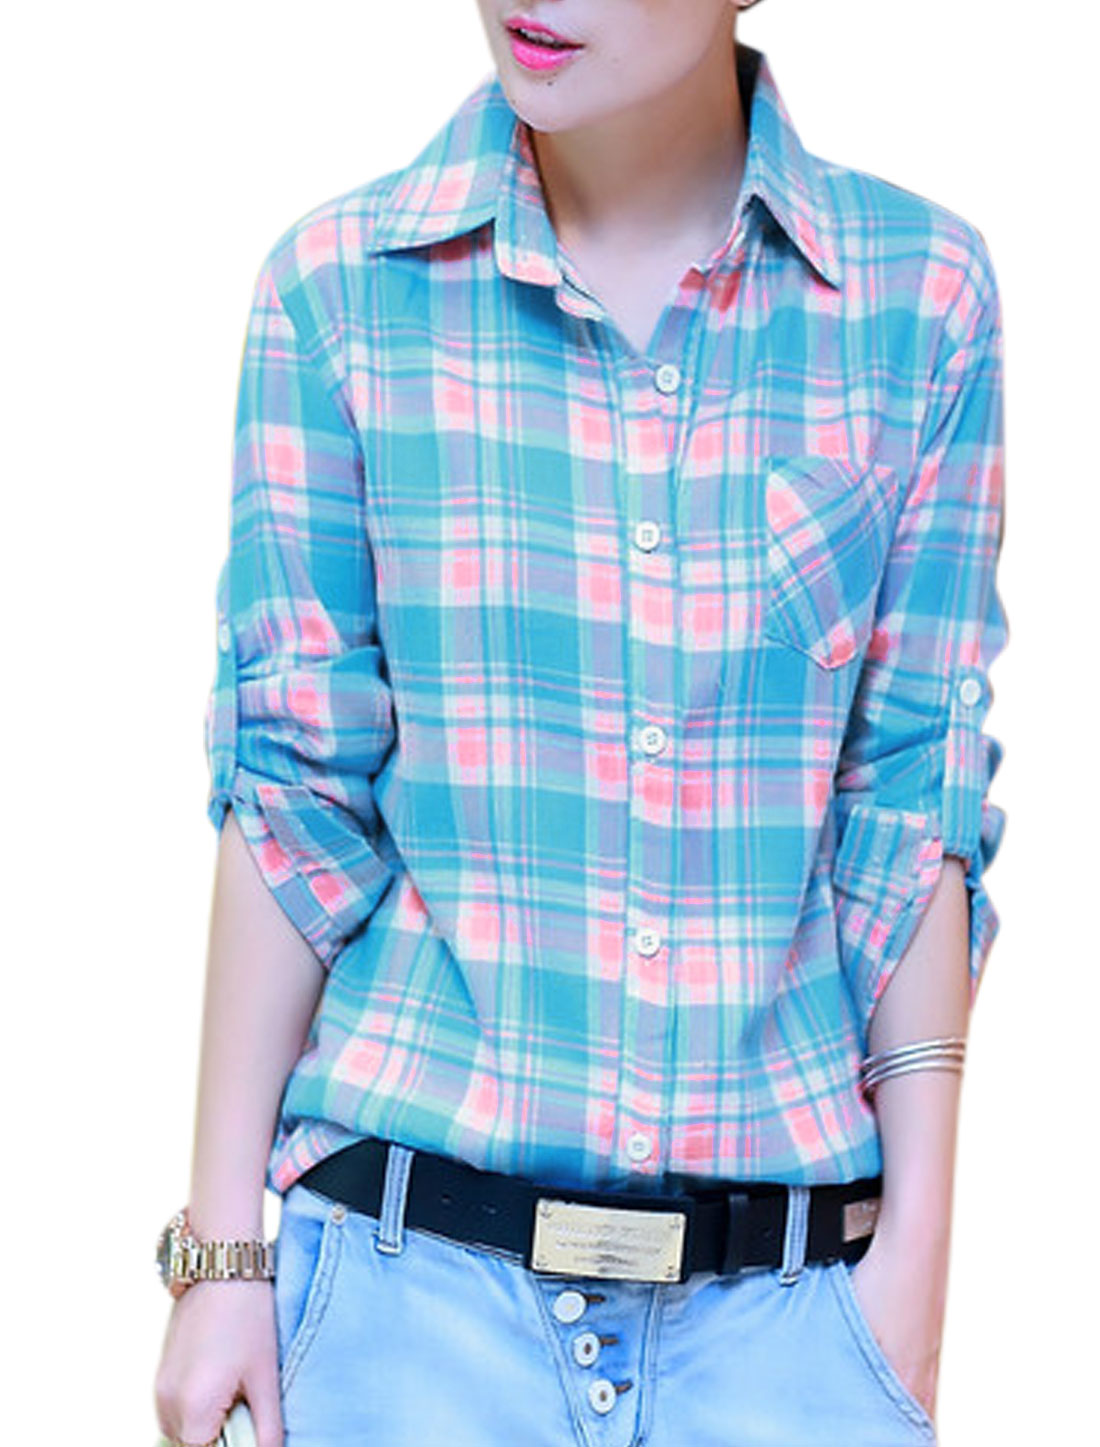 Lady Long Sleeve Plaids Pattern Leisure Shirt Baby Blue Pink S